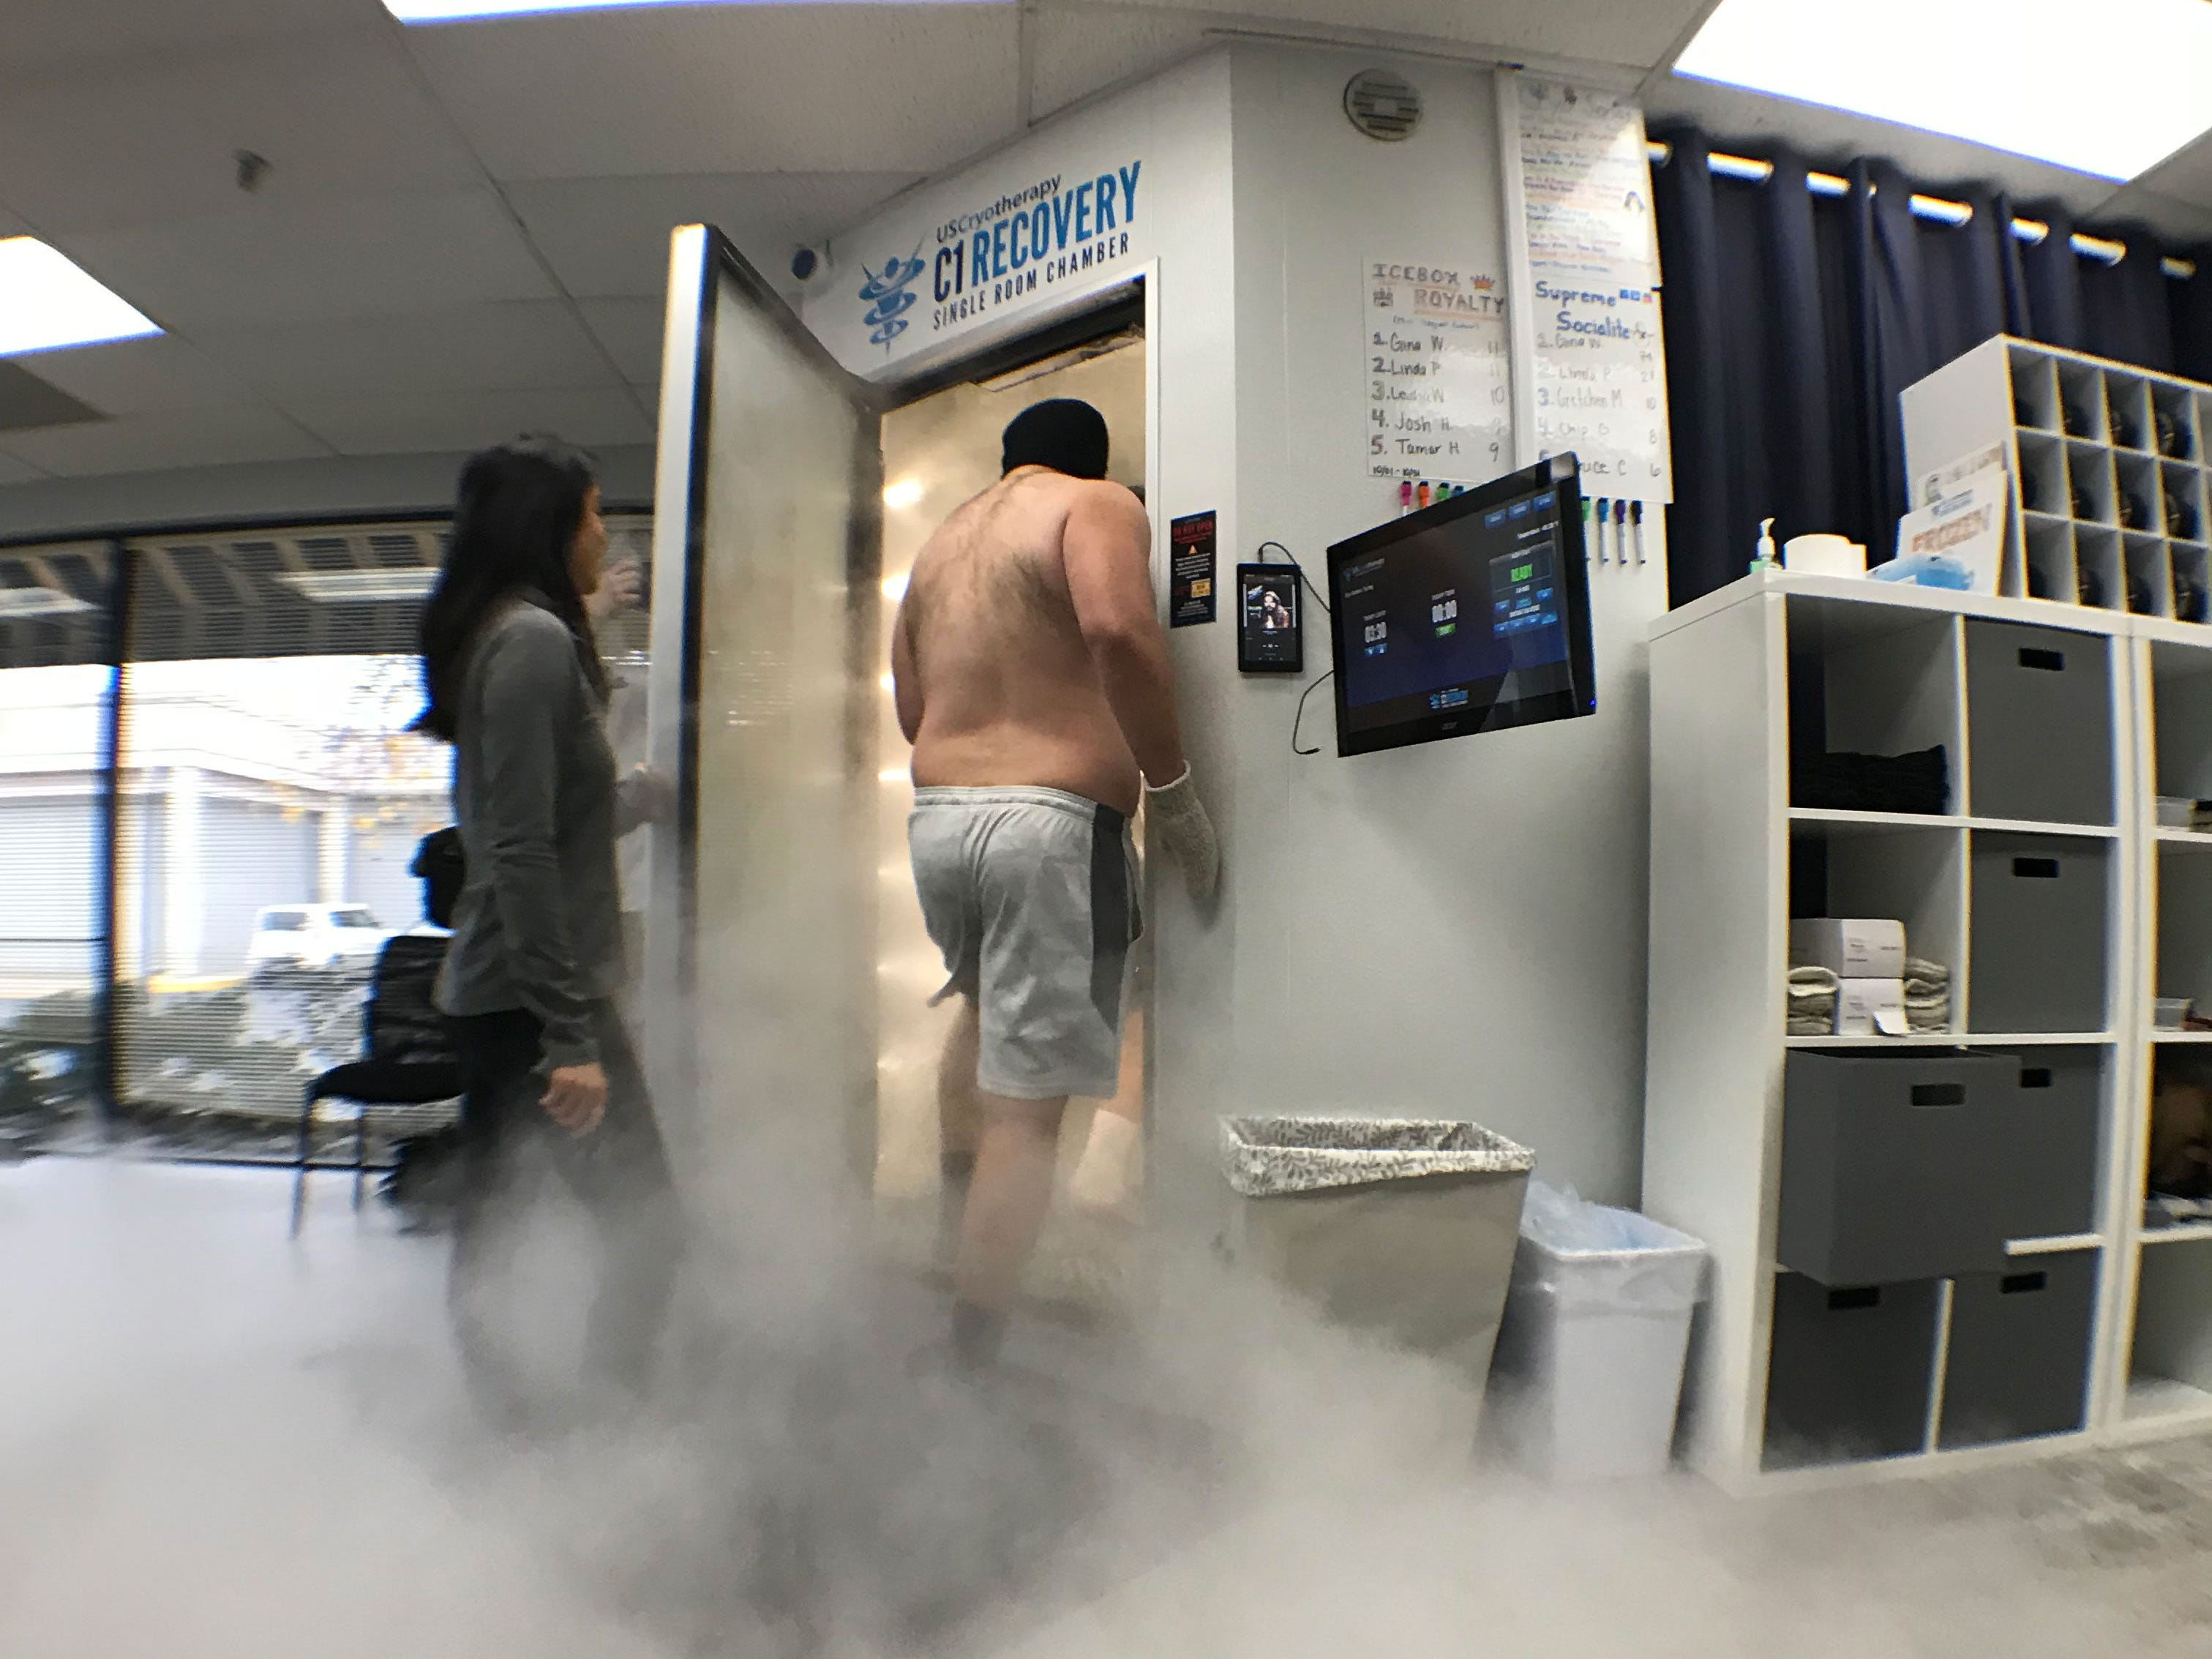 Ice in their veins: Western Michigan football players go sub-zero with cryotherapy